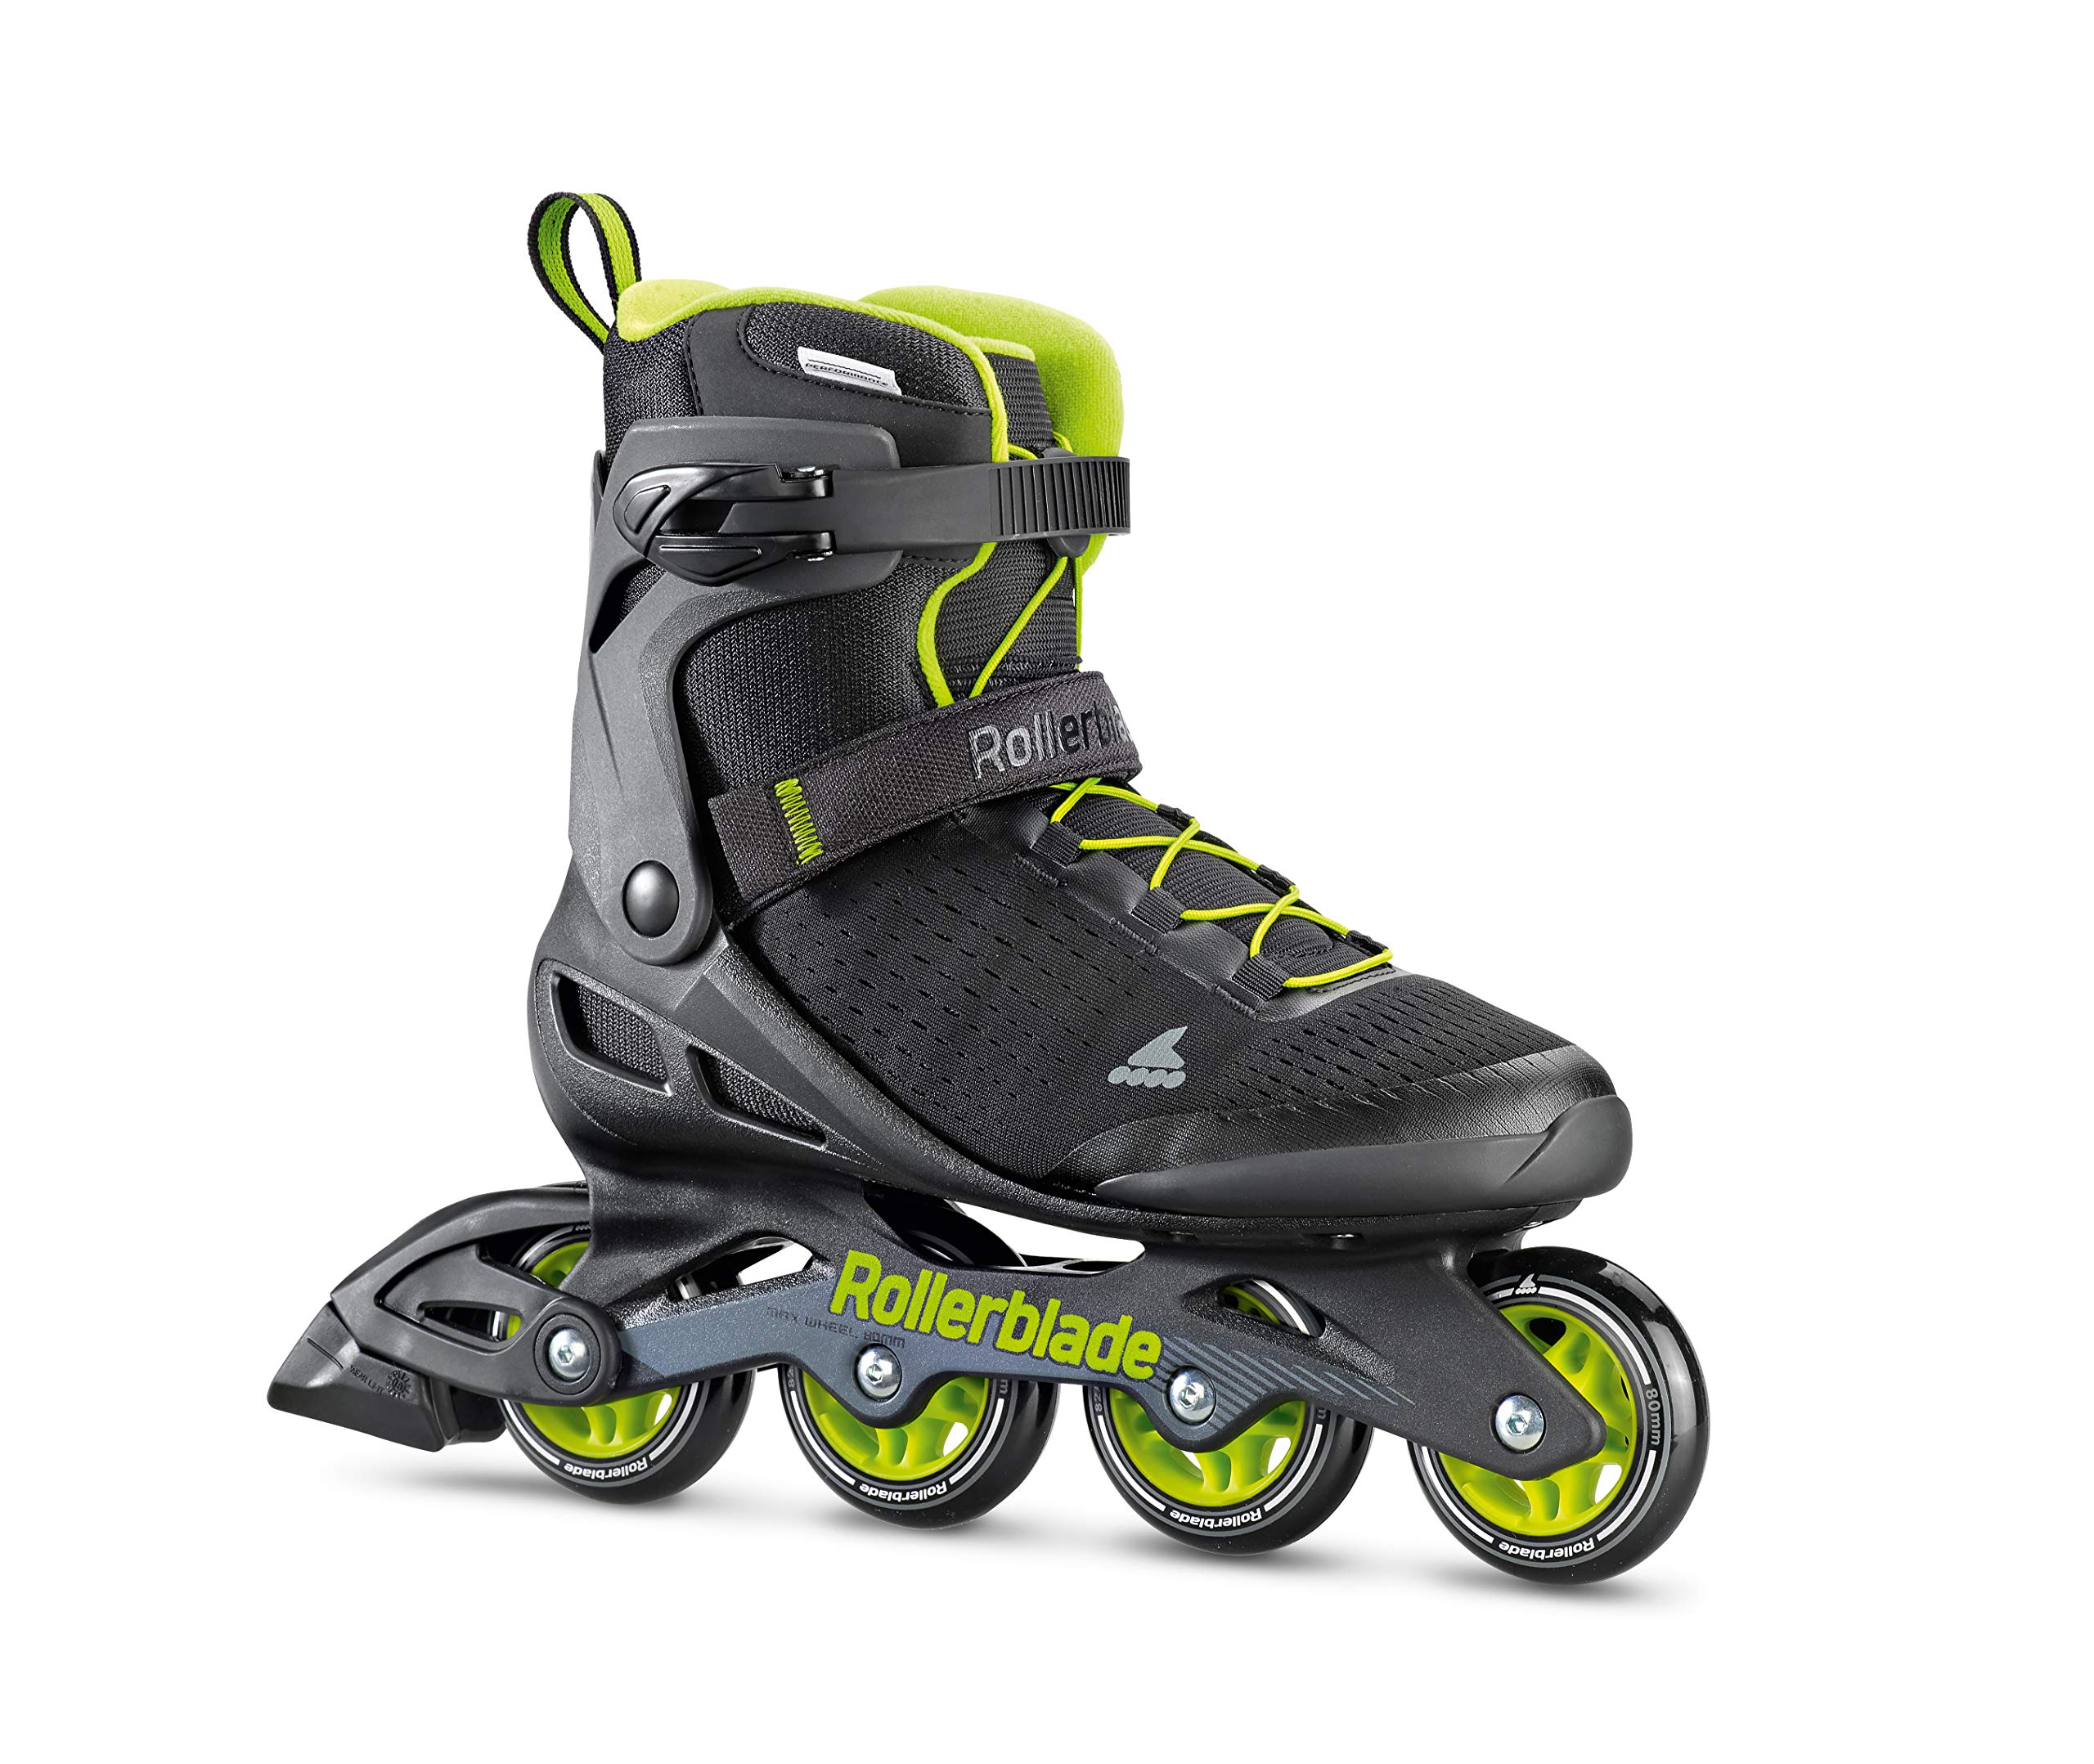 Rollerblade Zetrablade Elite Men's Adult Fitness Inline Skate, Black and Lime, Performance Inline Skates